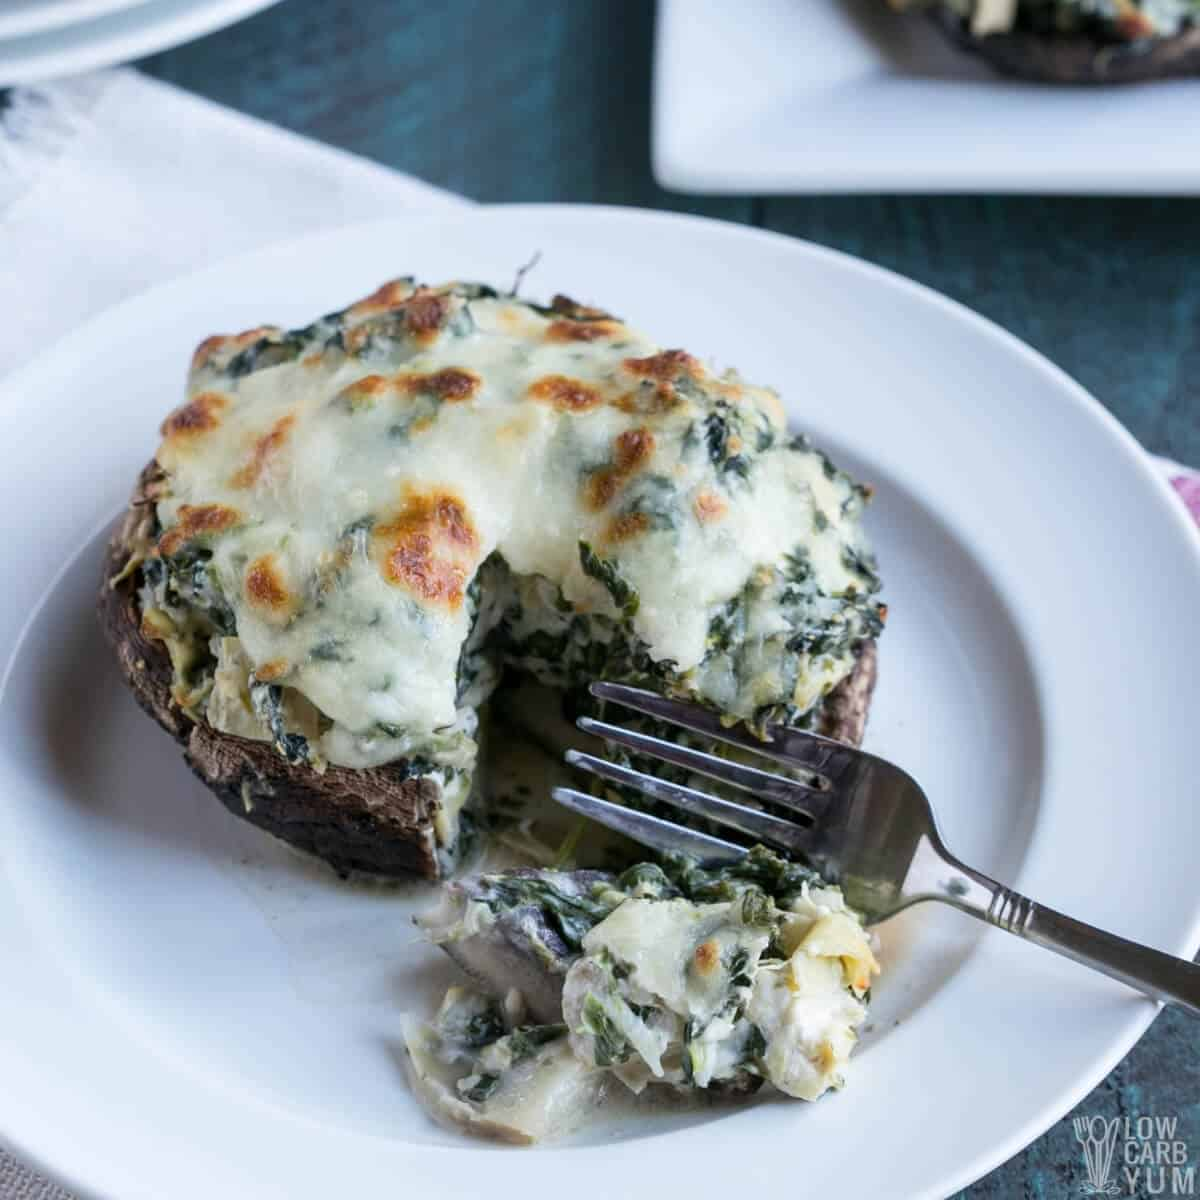 Stuffed Portobello Mushrooms With Spinach Artichoke Low Carb Yum